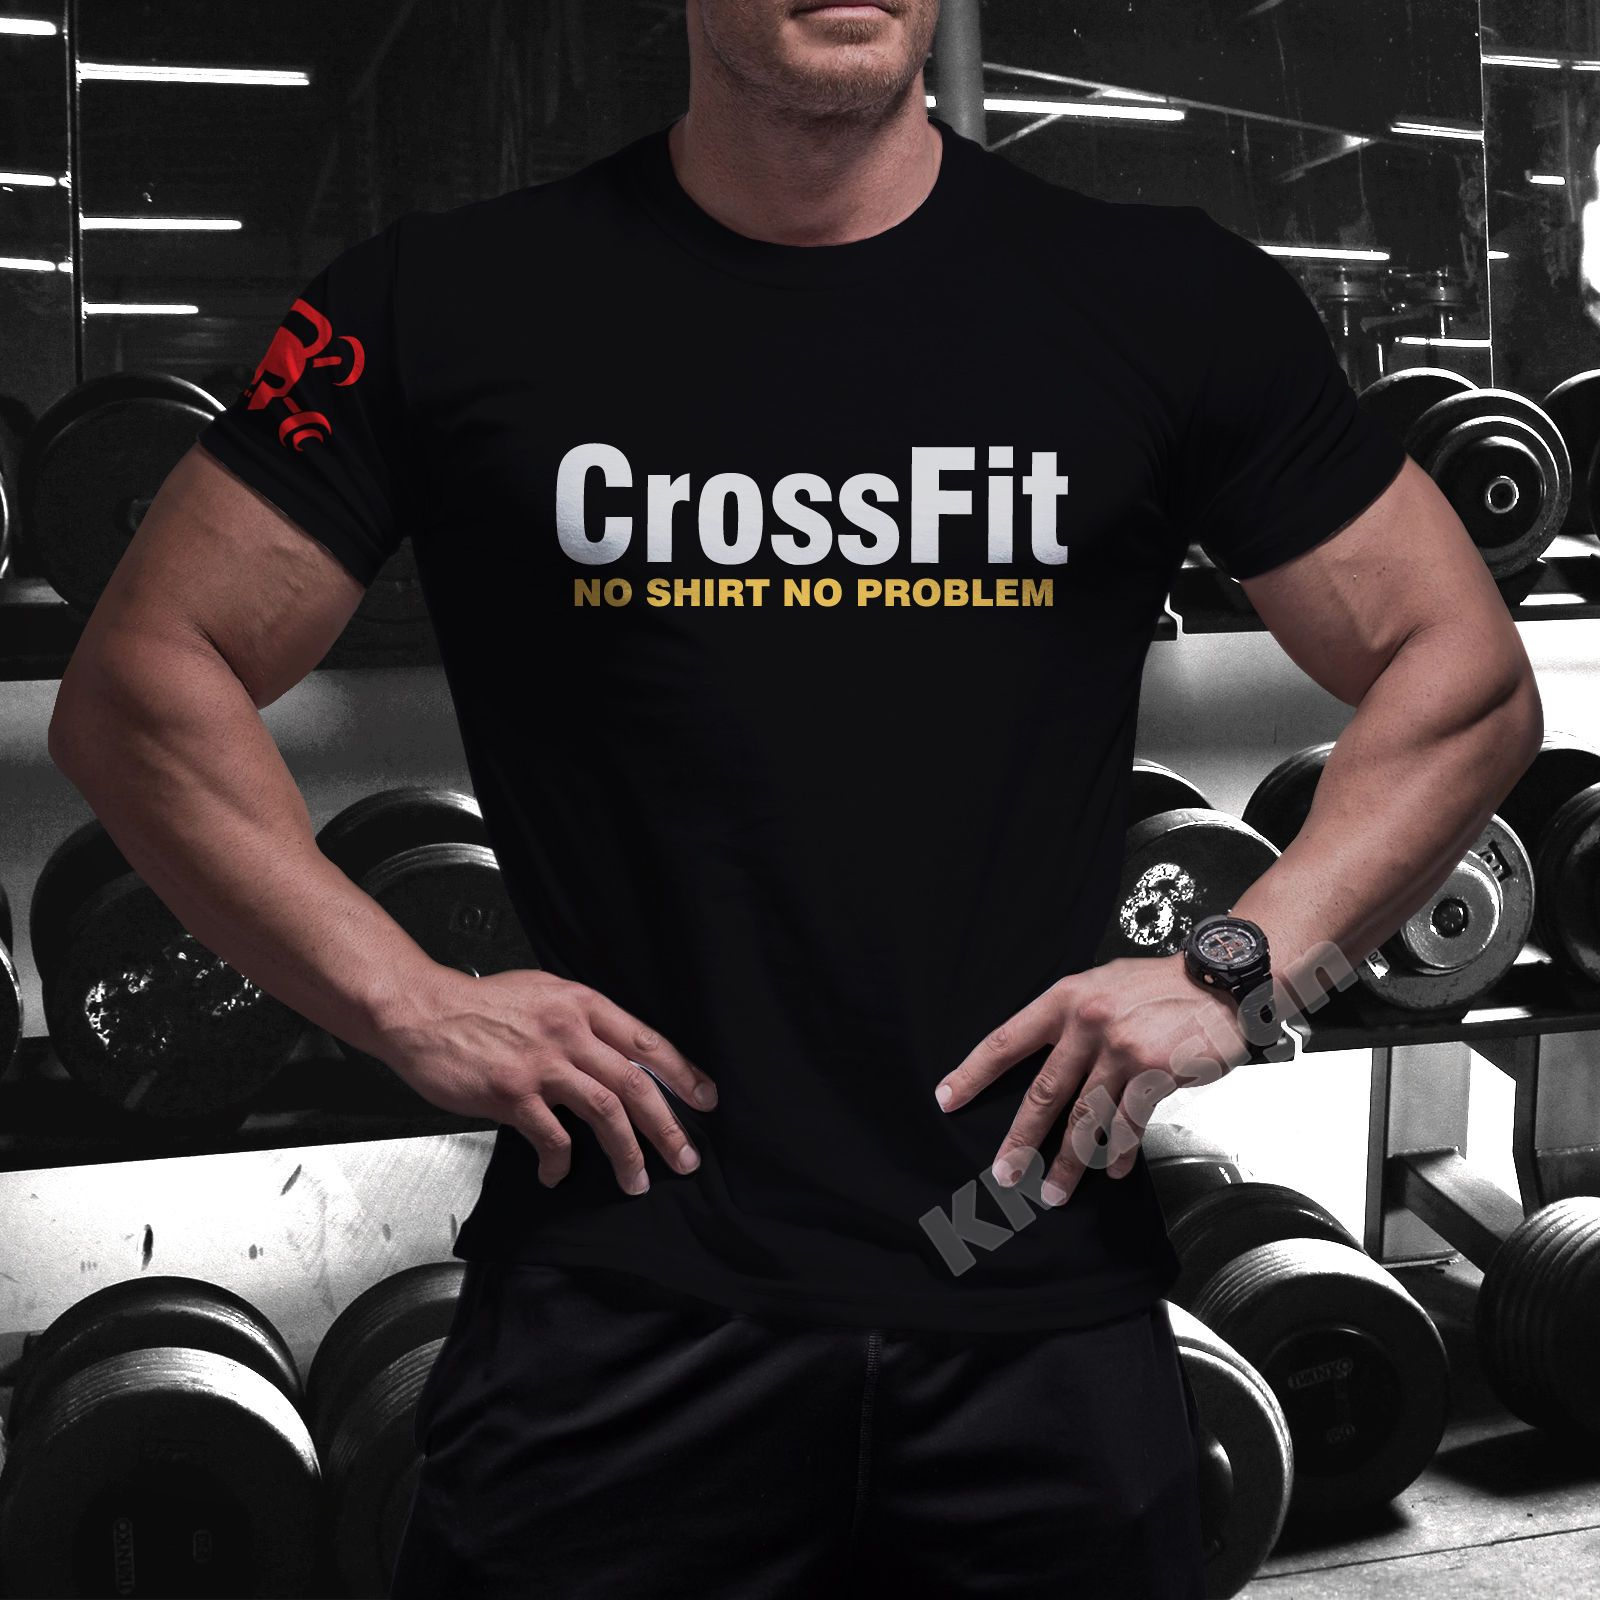 GYM CROSSFIT Mens T-Shirt WorkOut Functional Training Fitness Top Tshirt